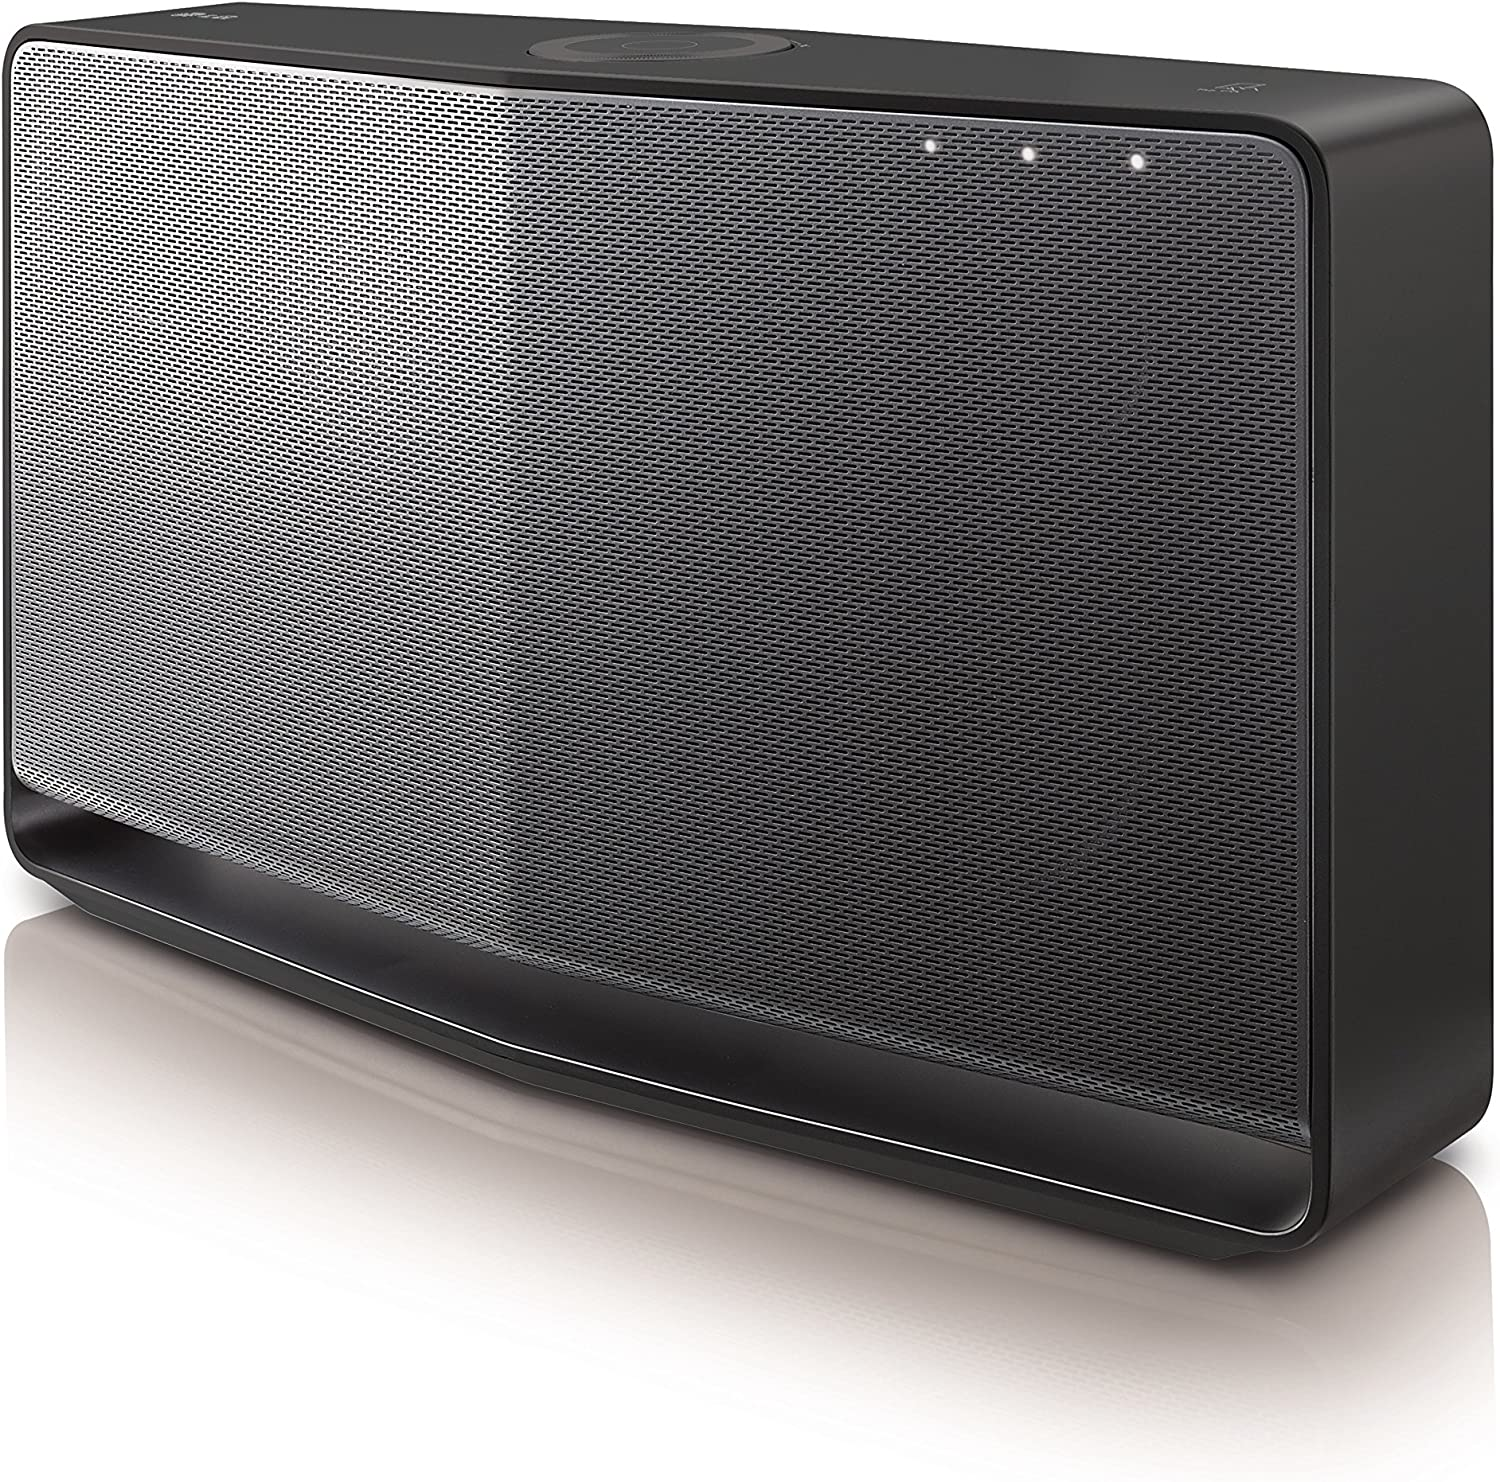 LG Electronics Music Flow H7 Wireless Speaker (2015 Model)